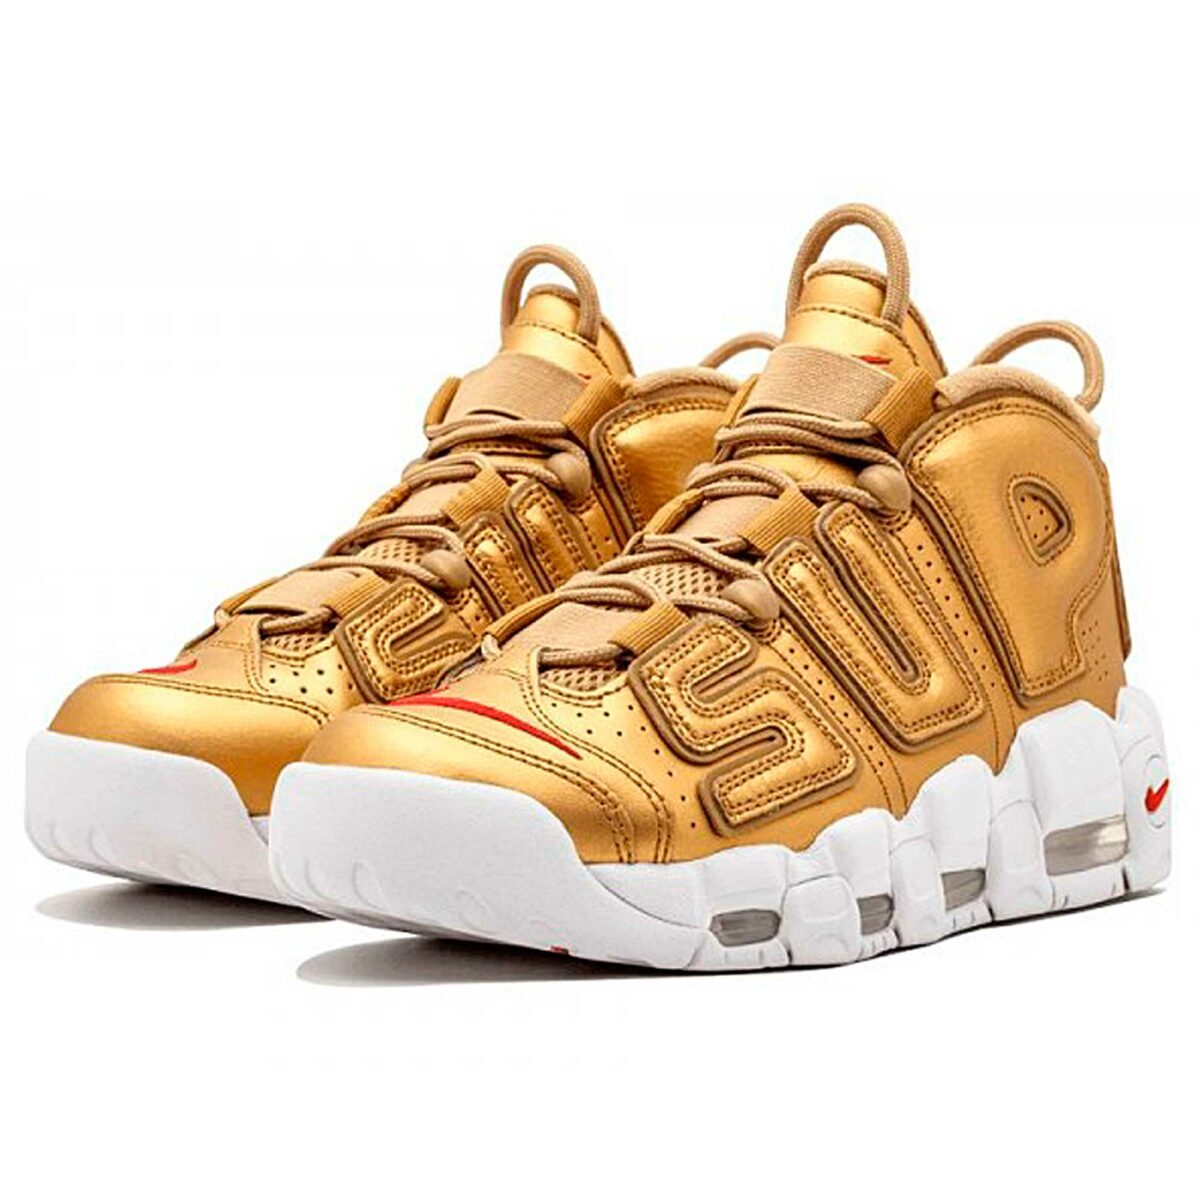 nike air more uptempo supreme metallic gold white 902290-700 купить